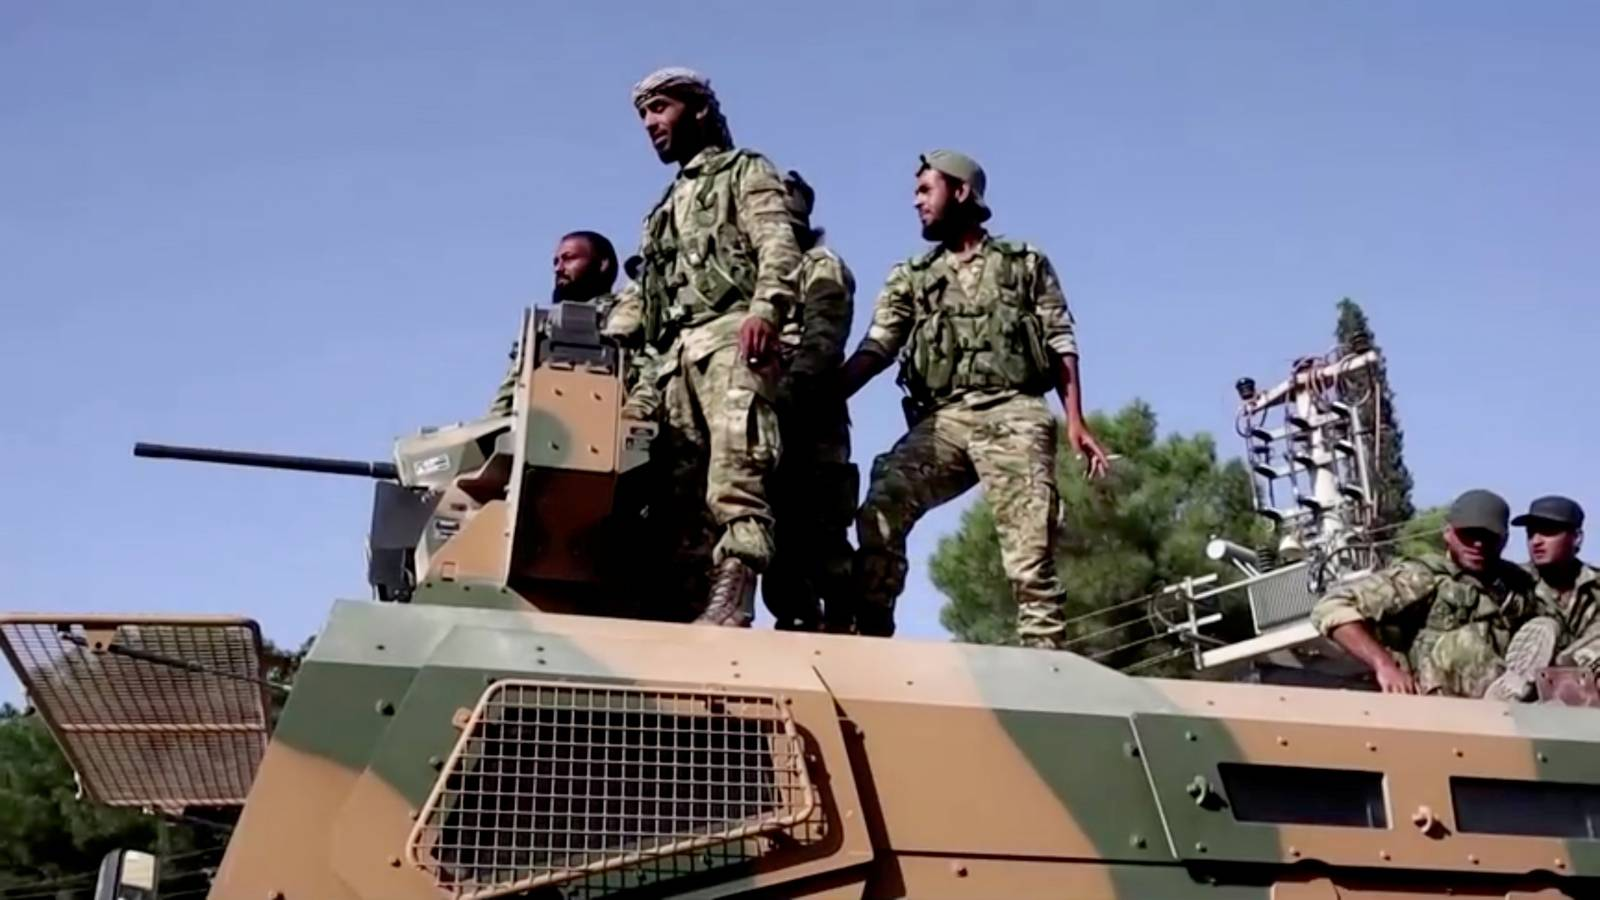 Syrian rebels stand on top of an armoured vehicle driving towards the border to cross into Syria, in Ceylanpinar